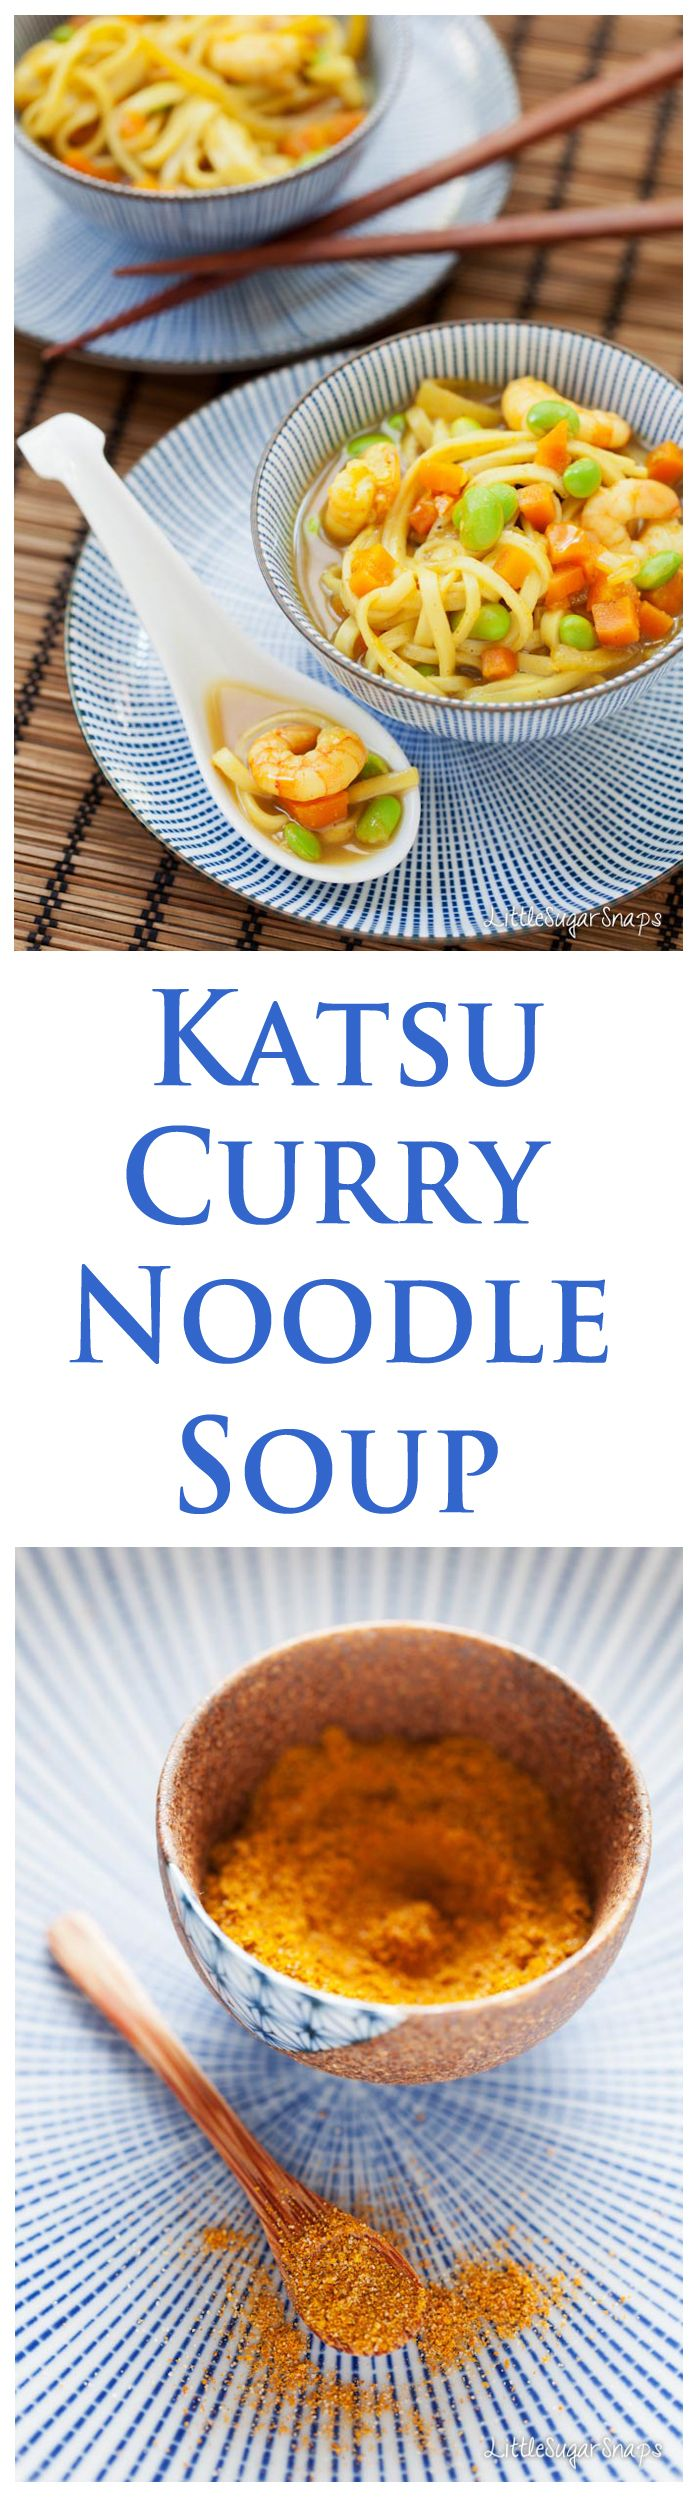 Noodle Soup loaded with Katsu Curry flavours. Great with prawns, chicken or shitake mushrooms for a vegetarian twist.